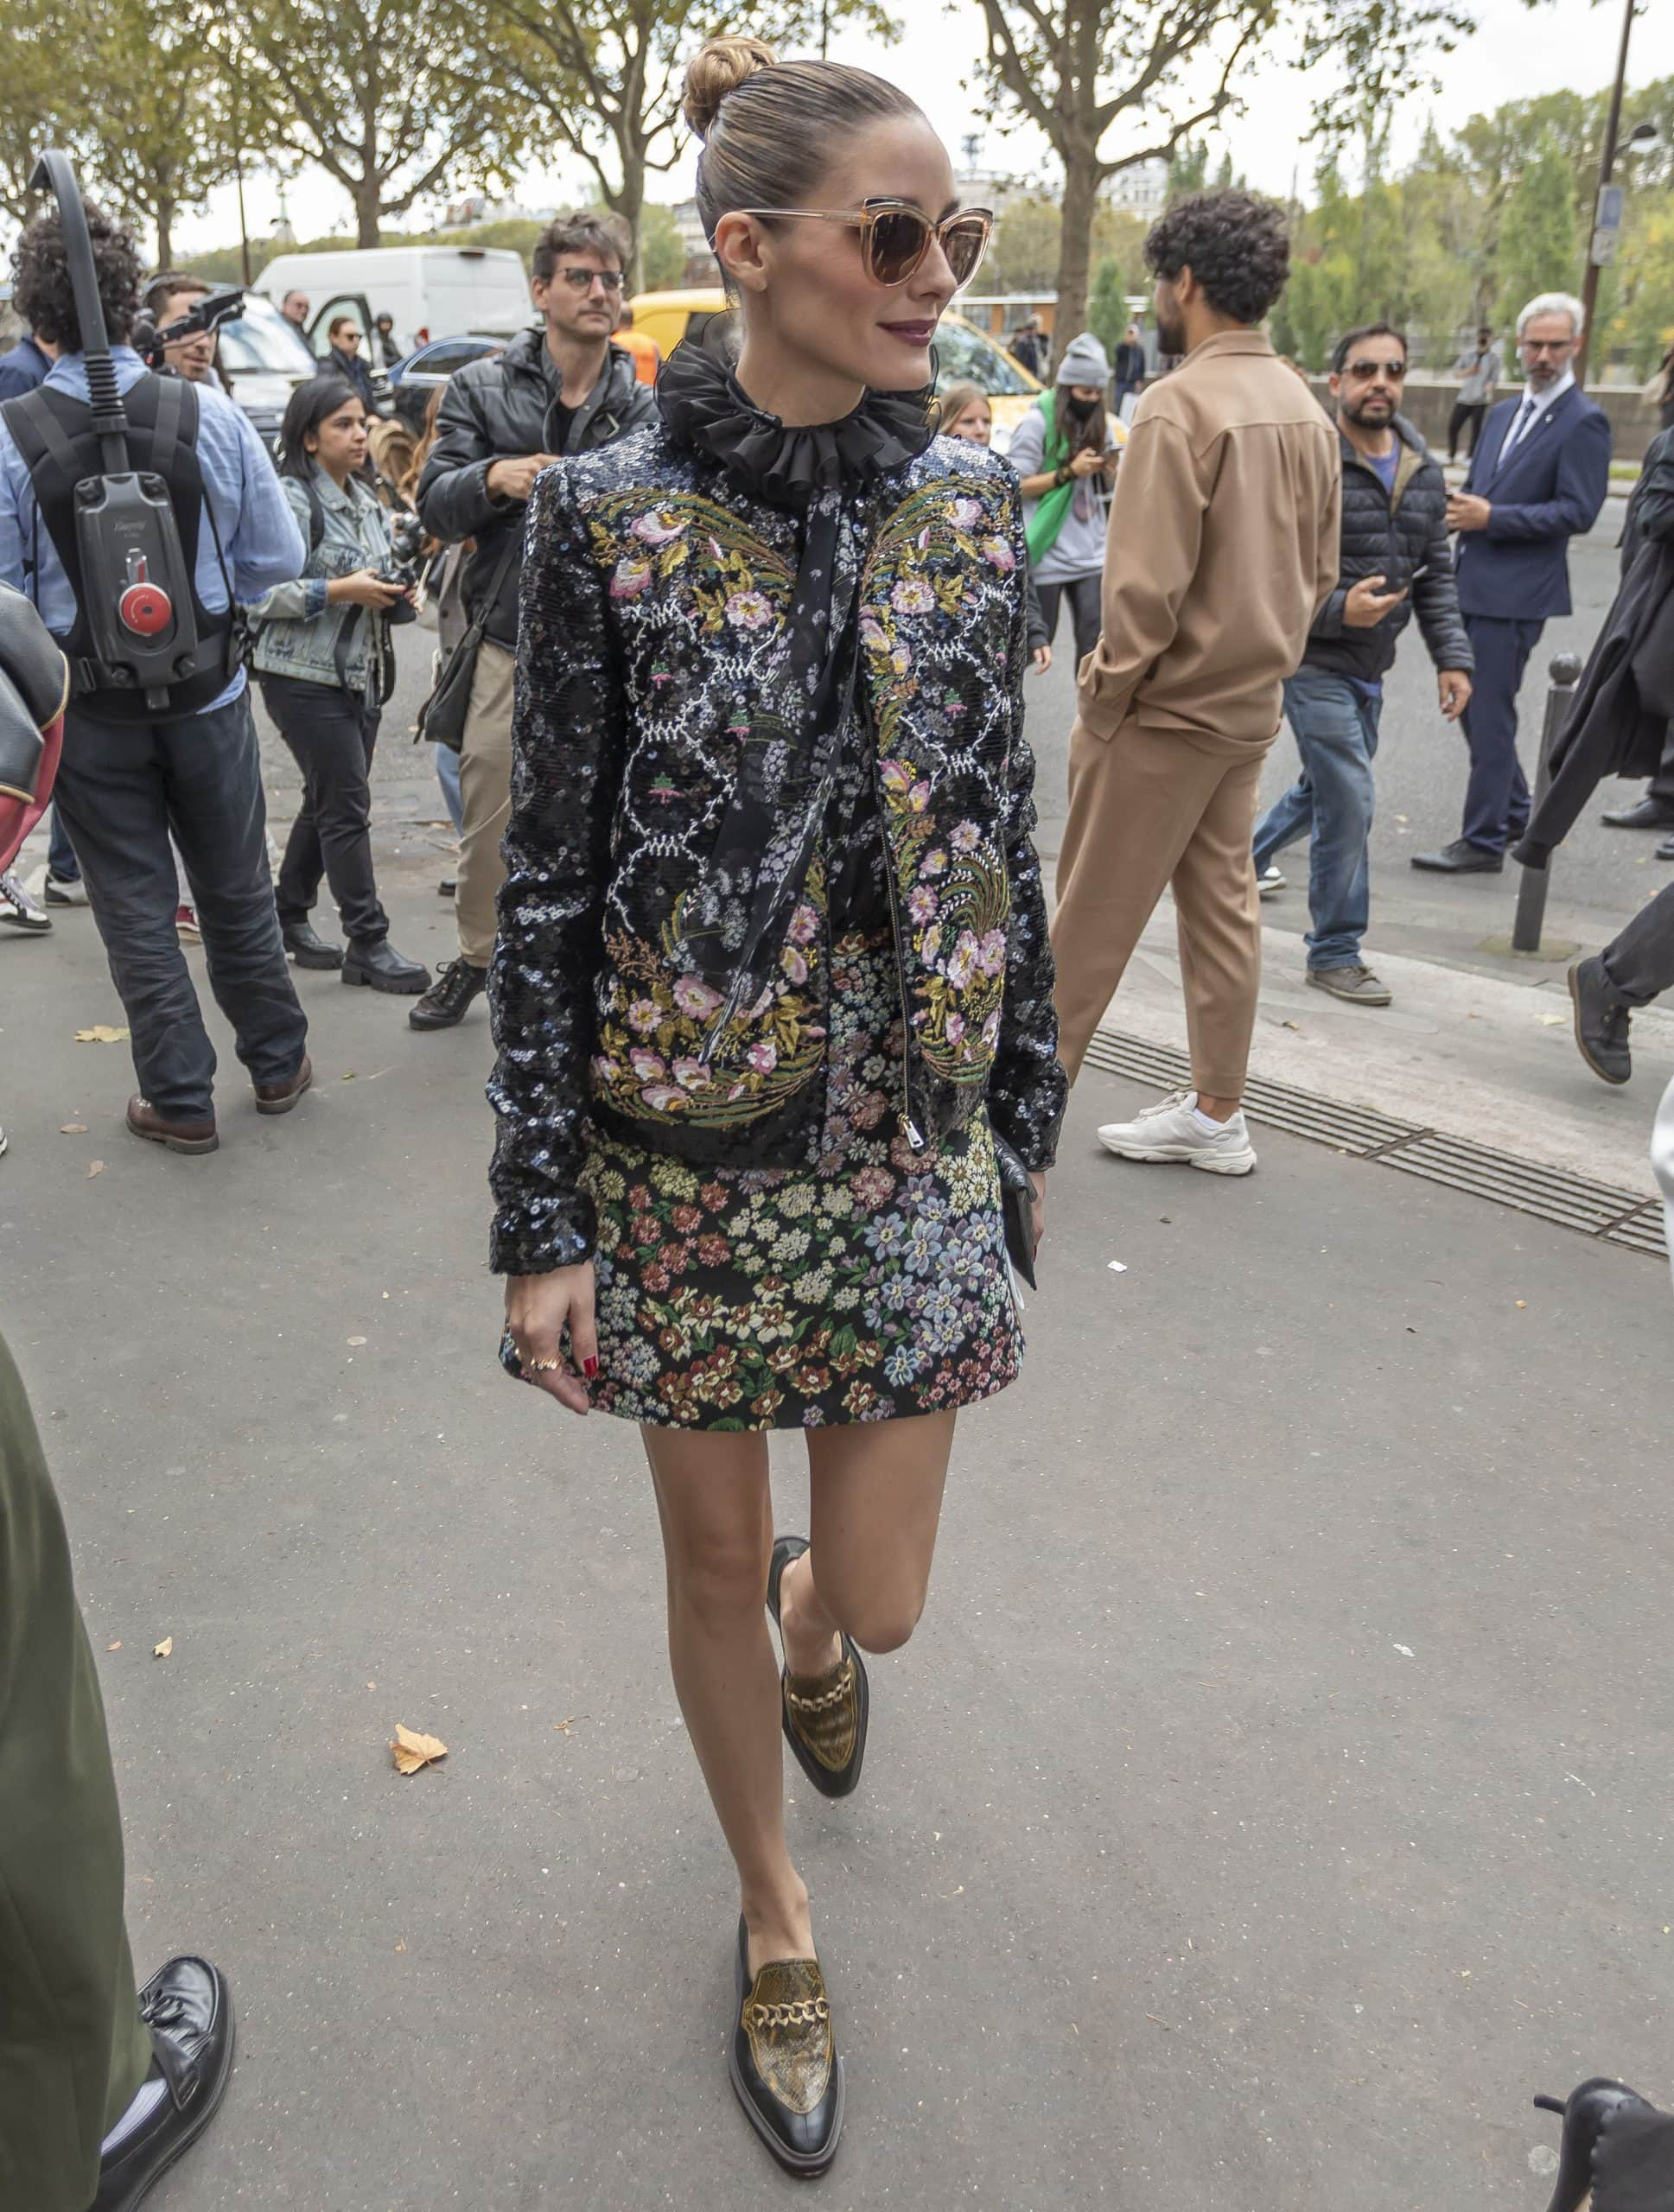 Olivia Palermo shows off her legs in a Giambattista Valli Fall 2021 floral jacquard mini skirt and jacket